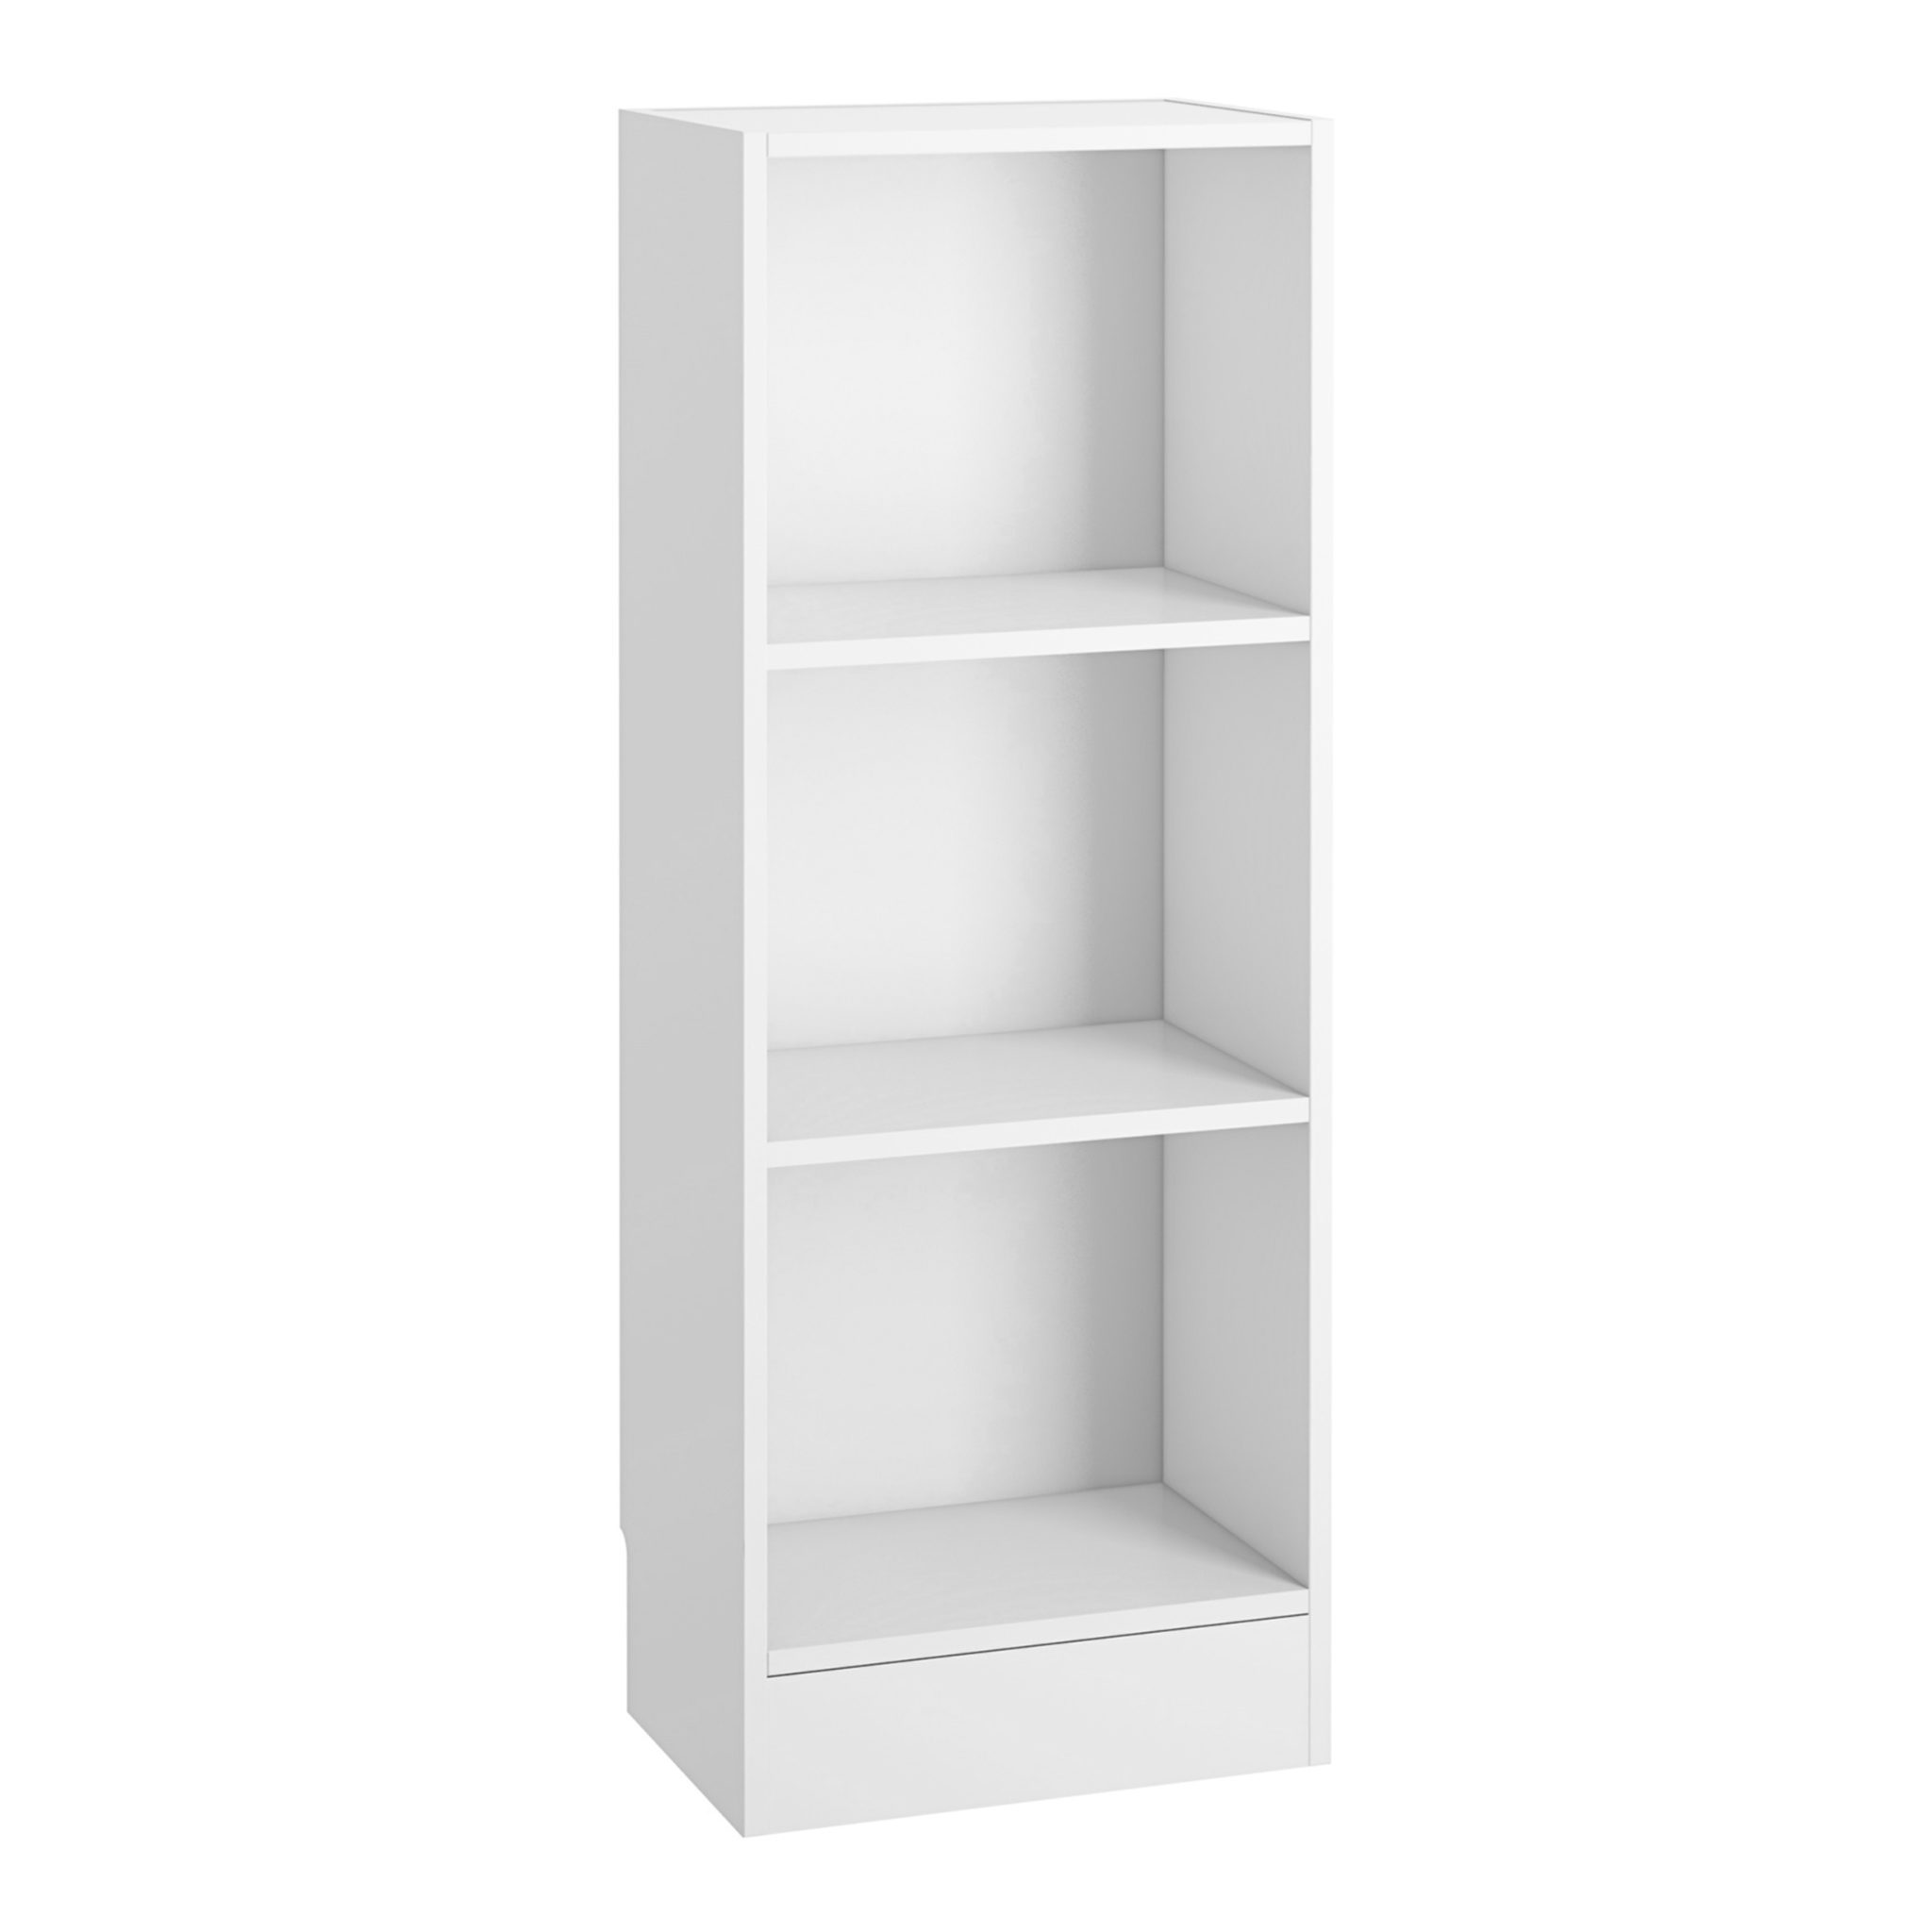 Duday Low Narrow Bookcase (2 Shelves) in White